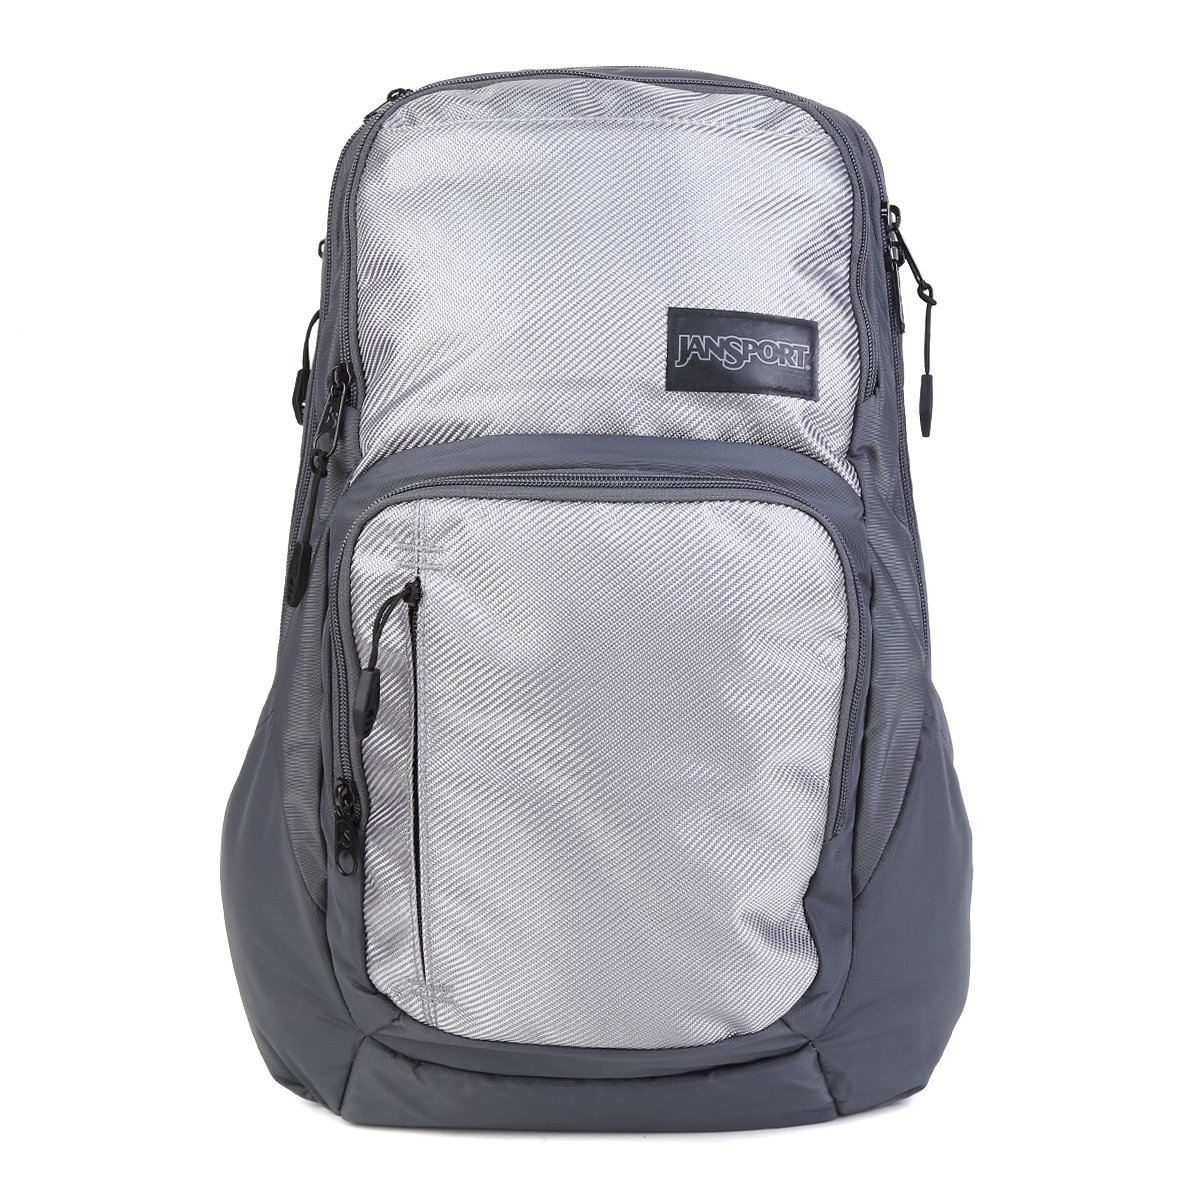 Mochila Jansport Broadband